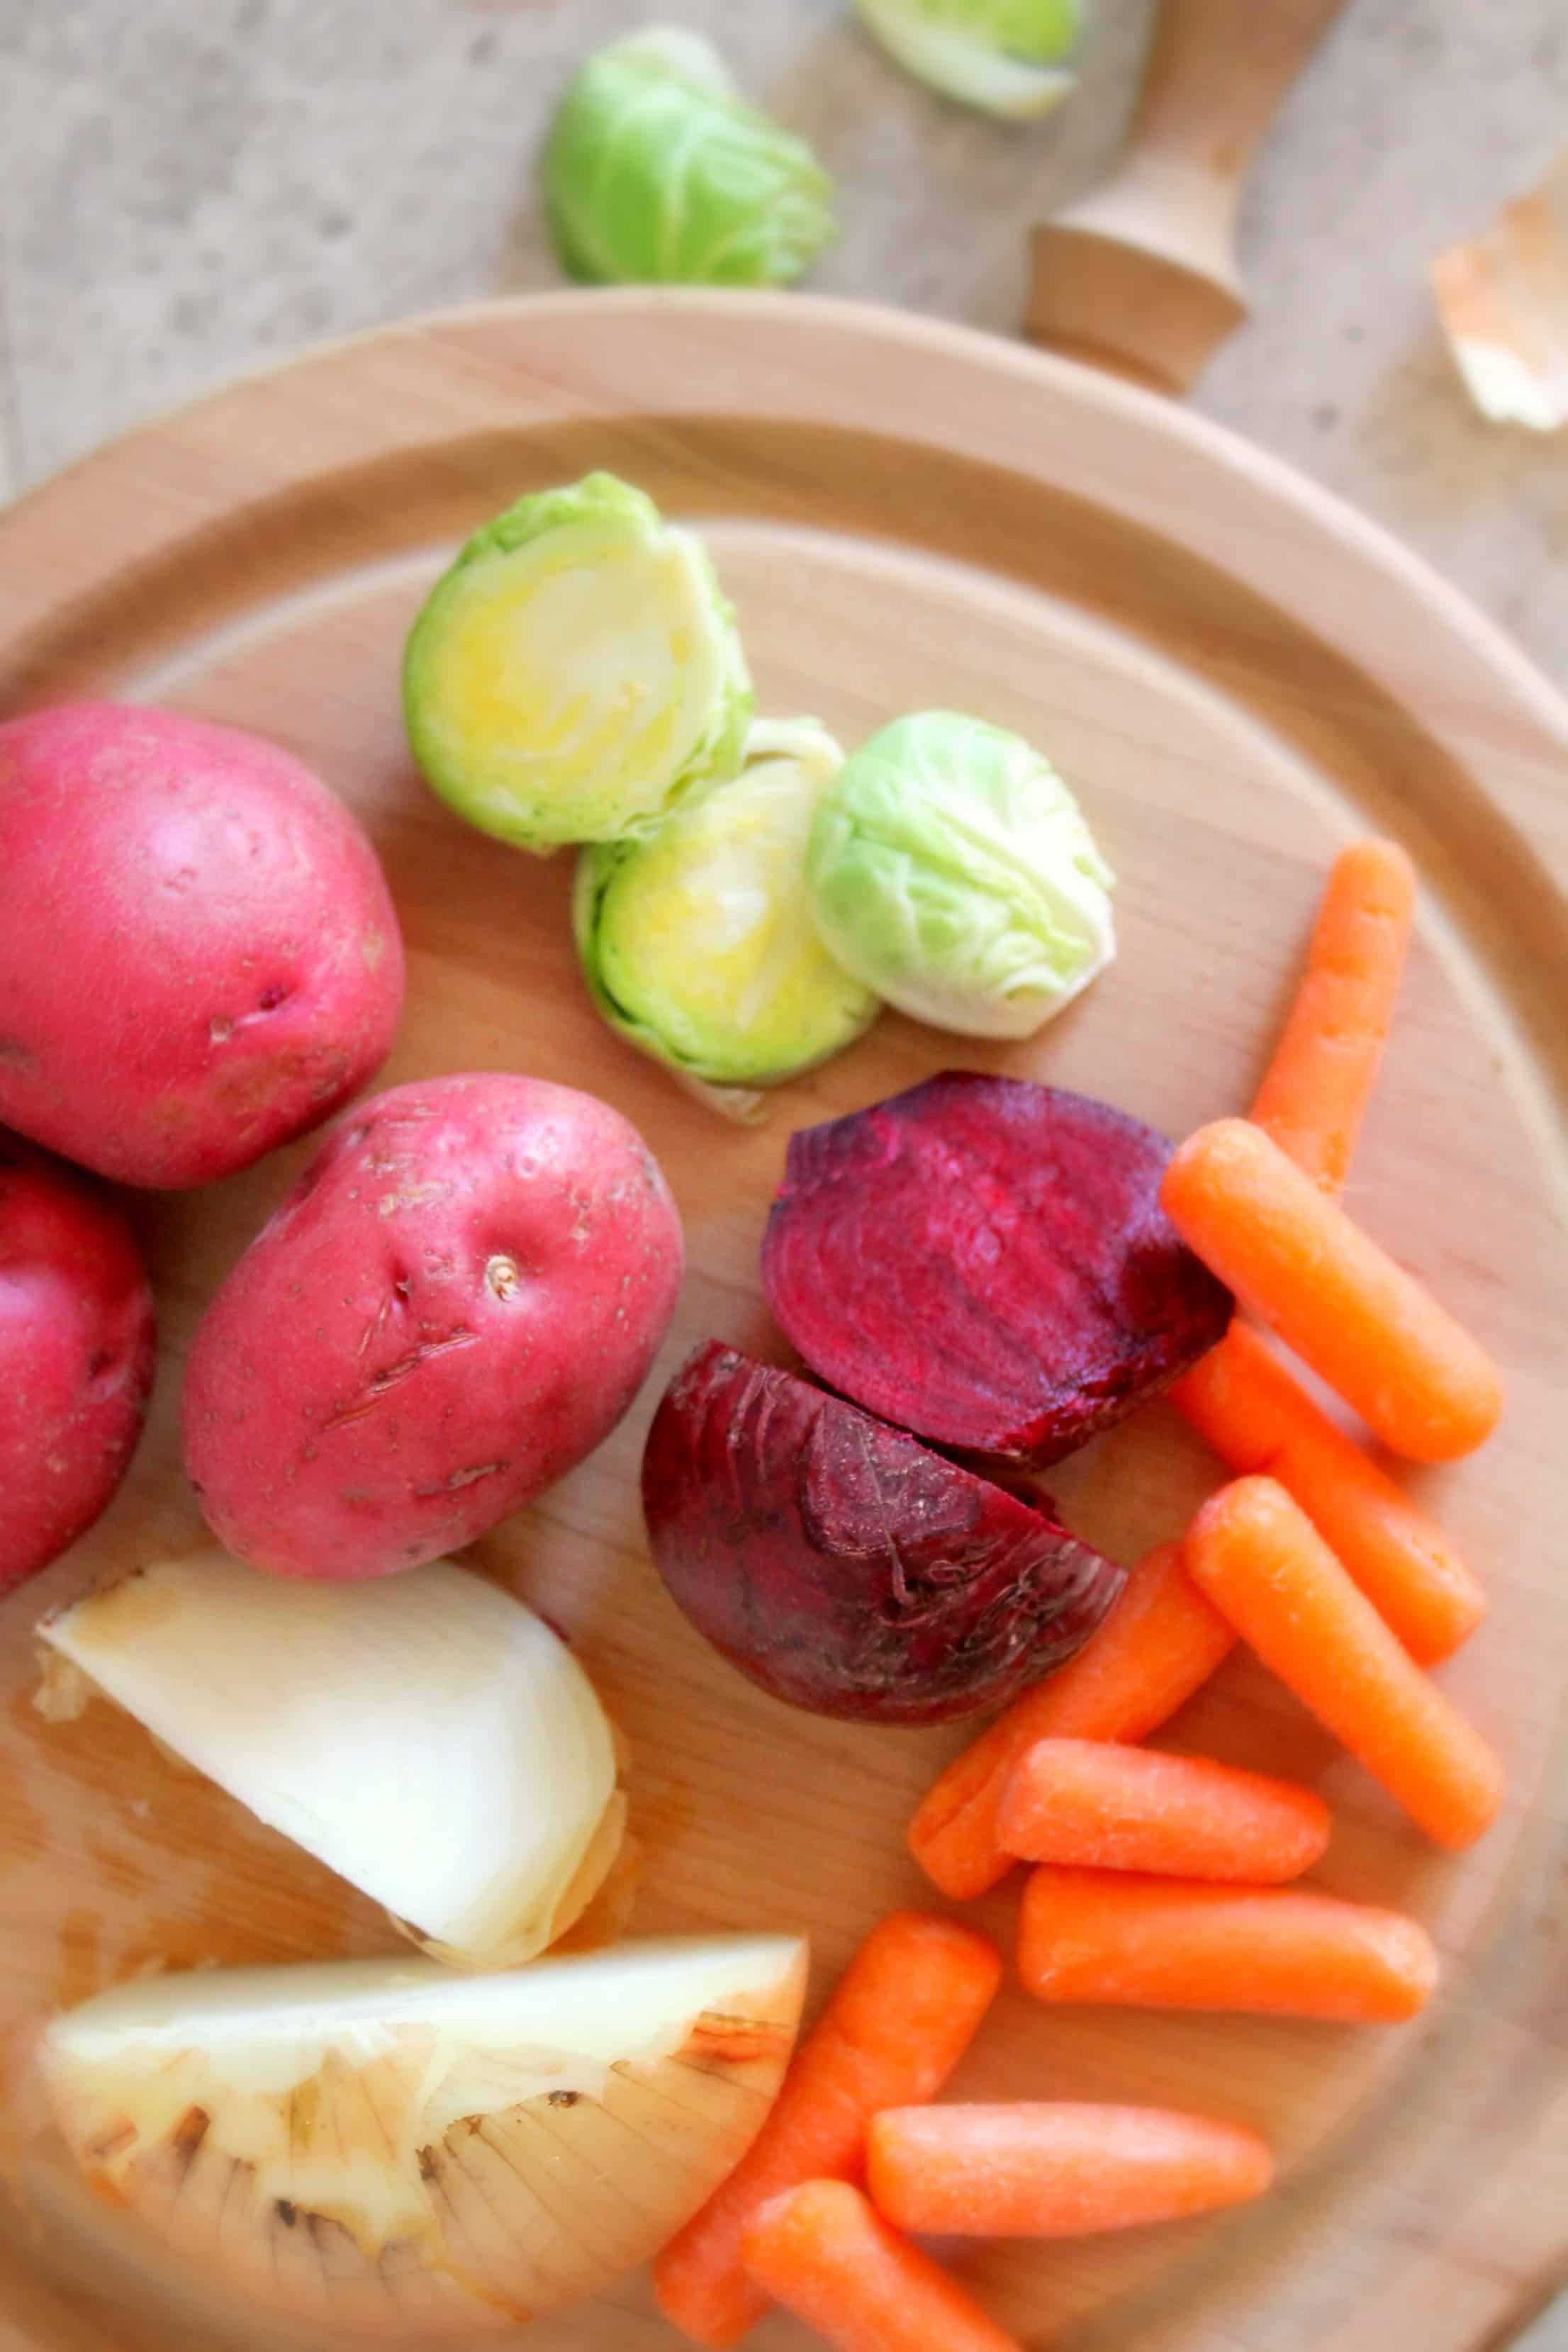 red potatoes, brussels sprouts, beets, carrots,